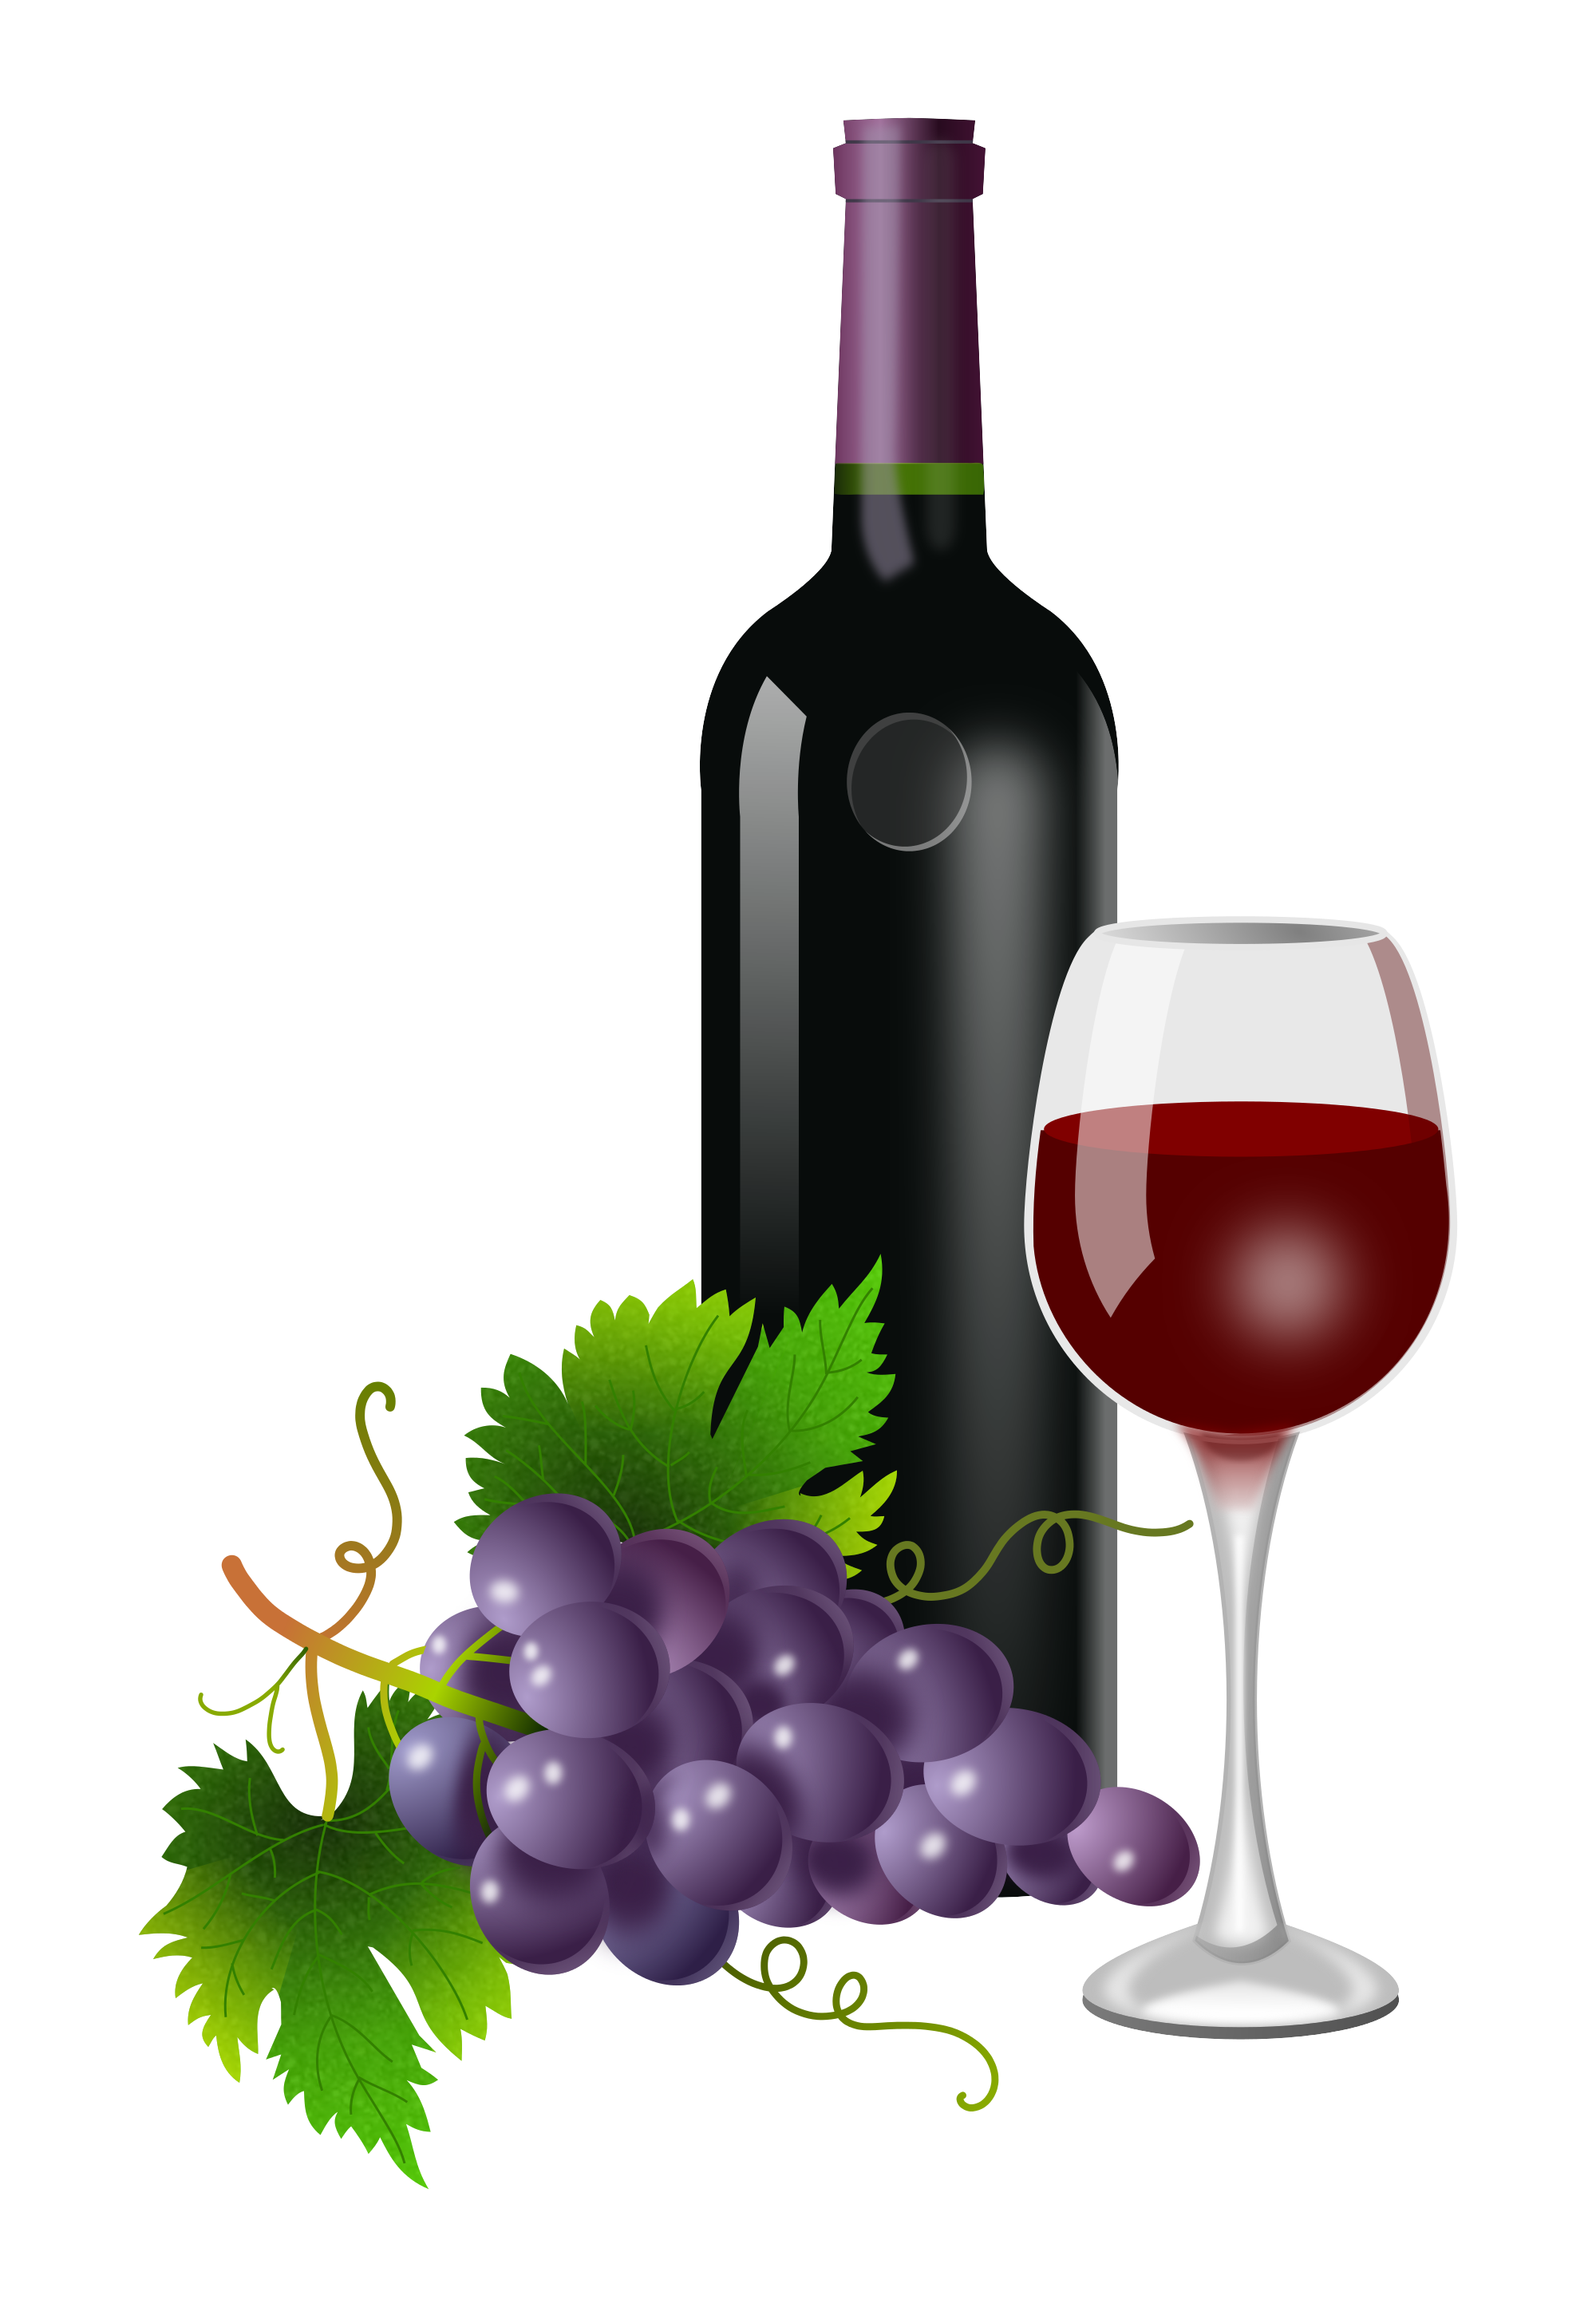 Purple grapes bottle and. Clipart hippo wine